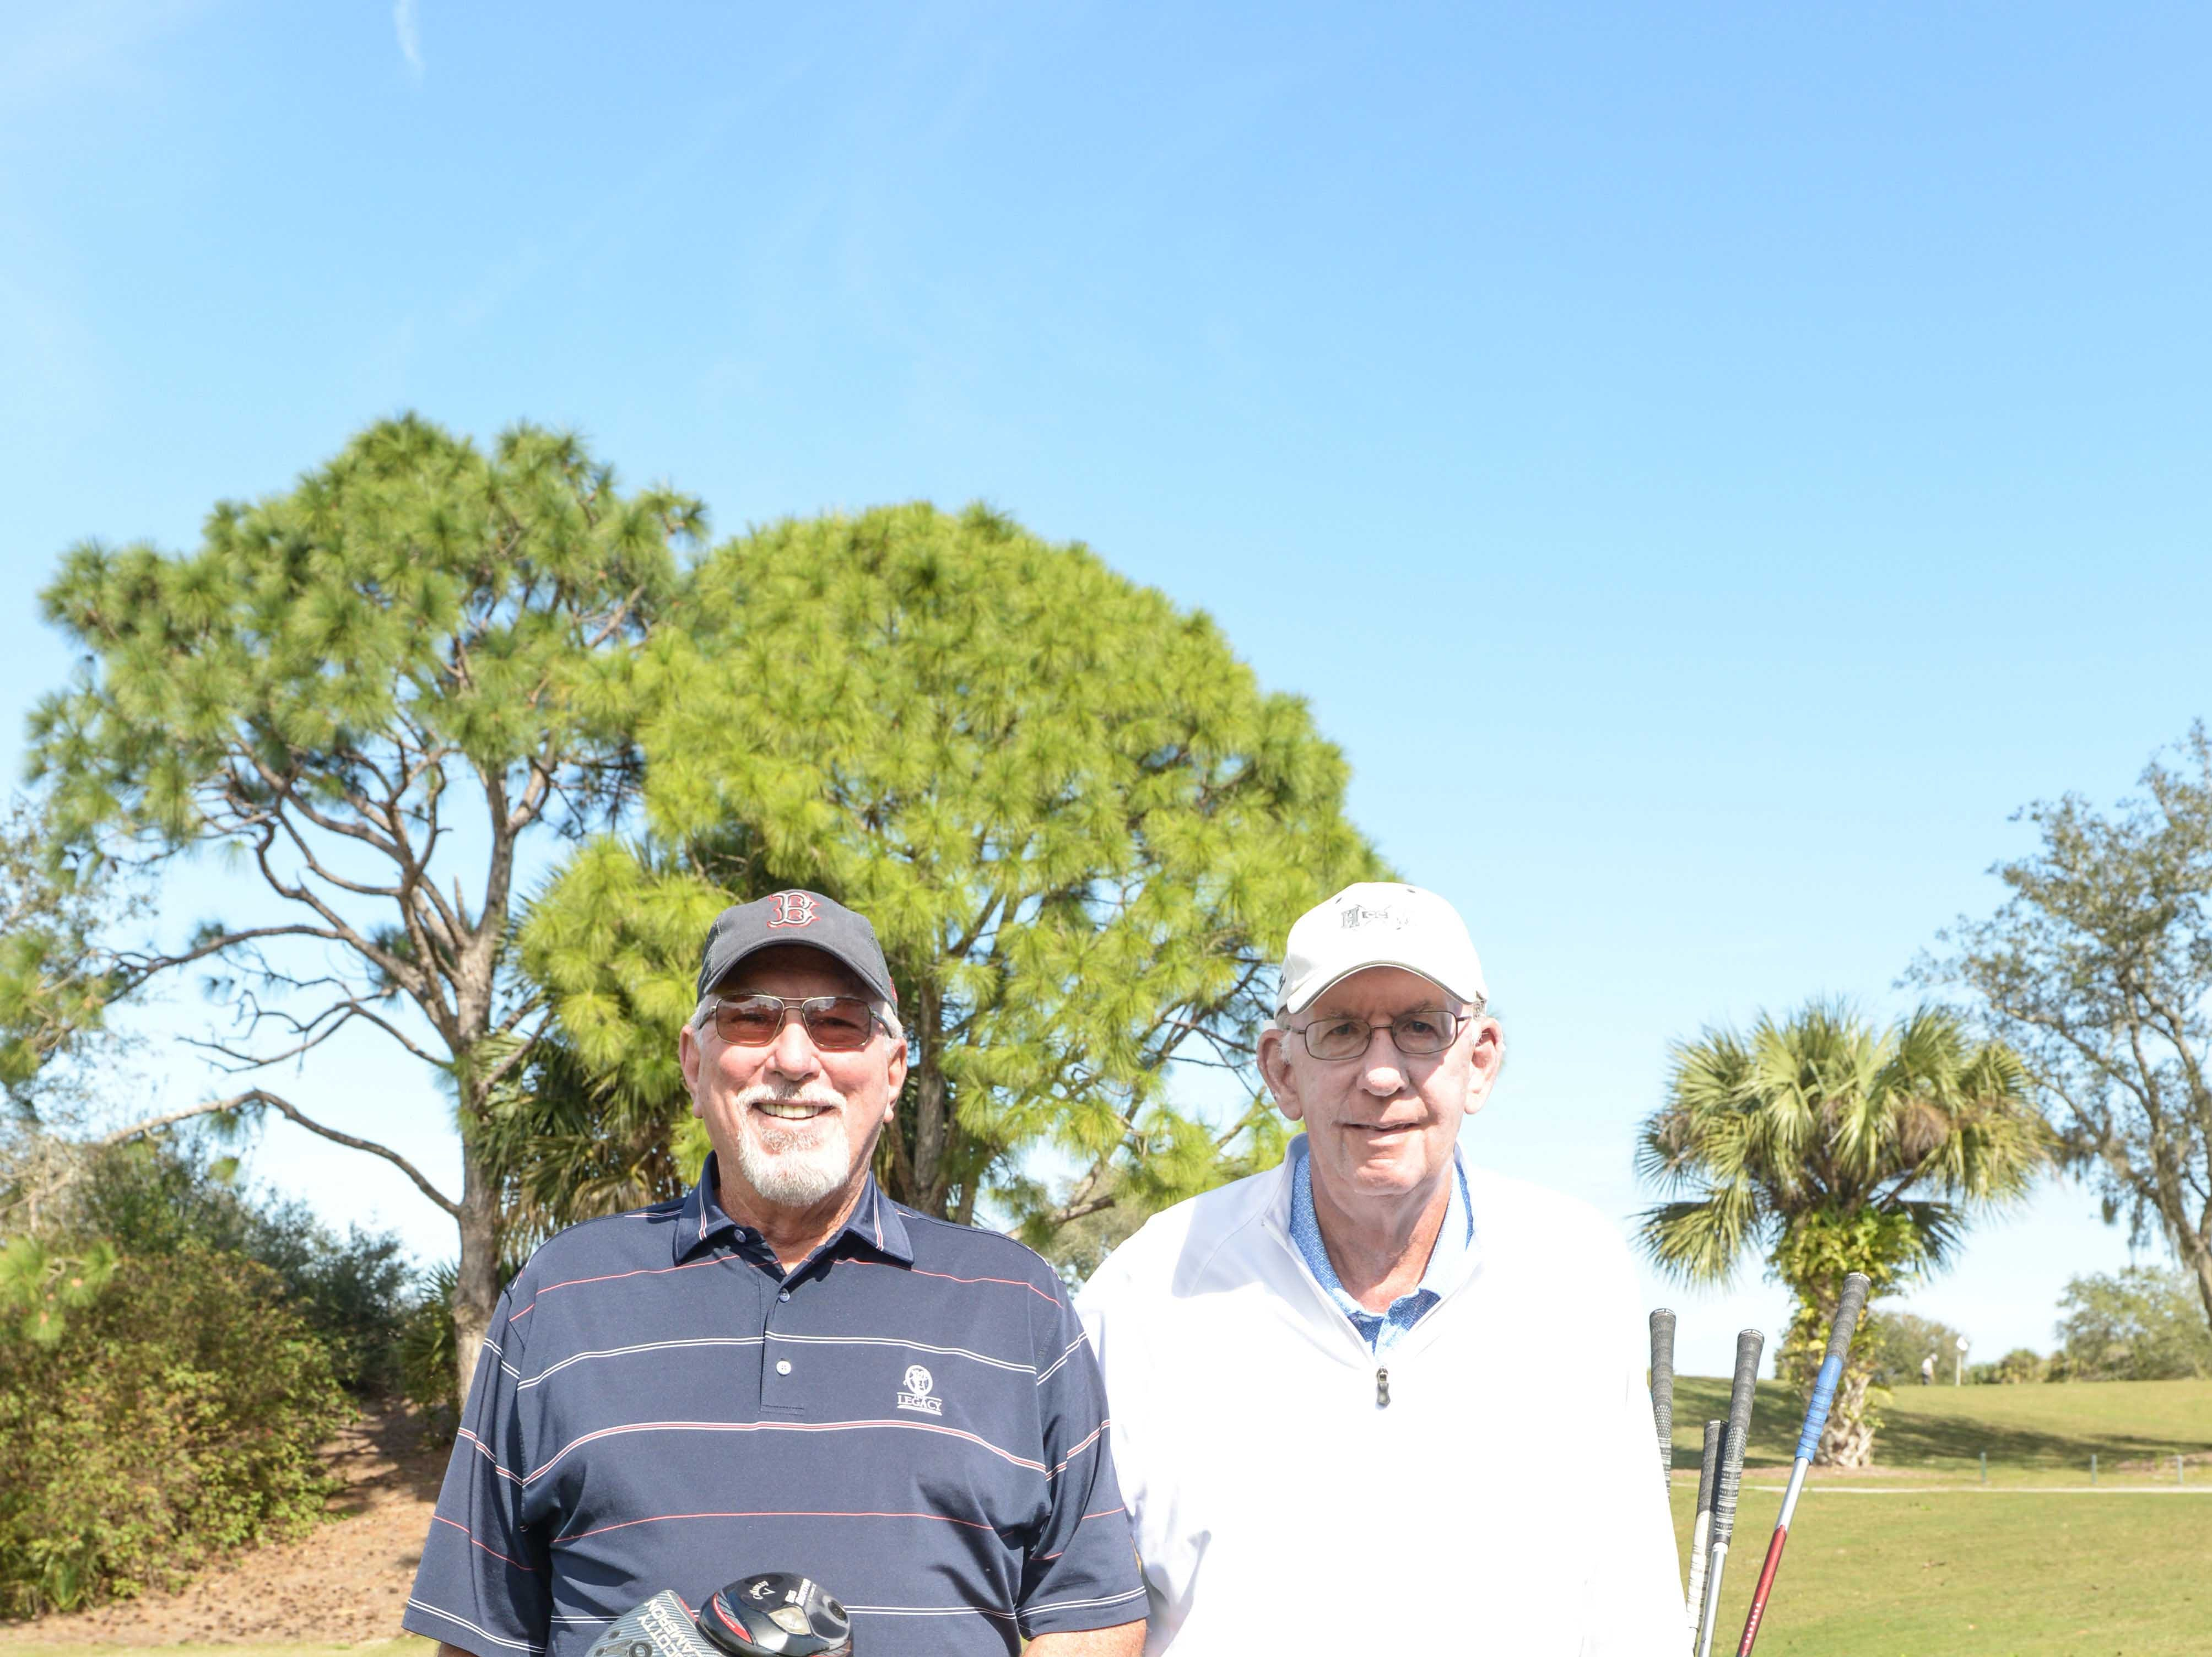 Al Howard, left, and Len Odell at Hawk's Nest Golf Club for the Big Brothers Big Sisters Golf Tournament on Feb. 4.